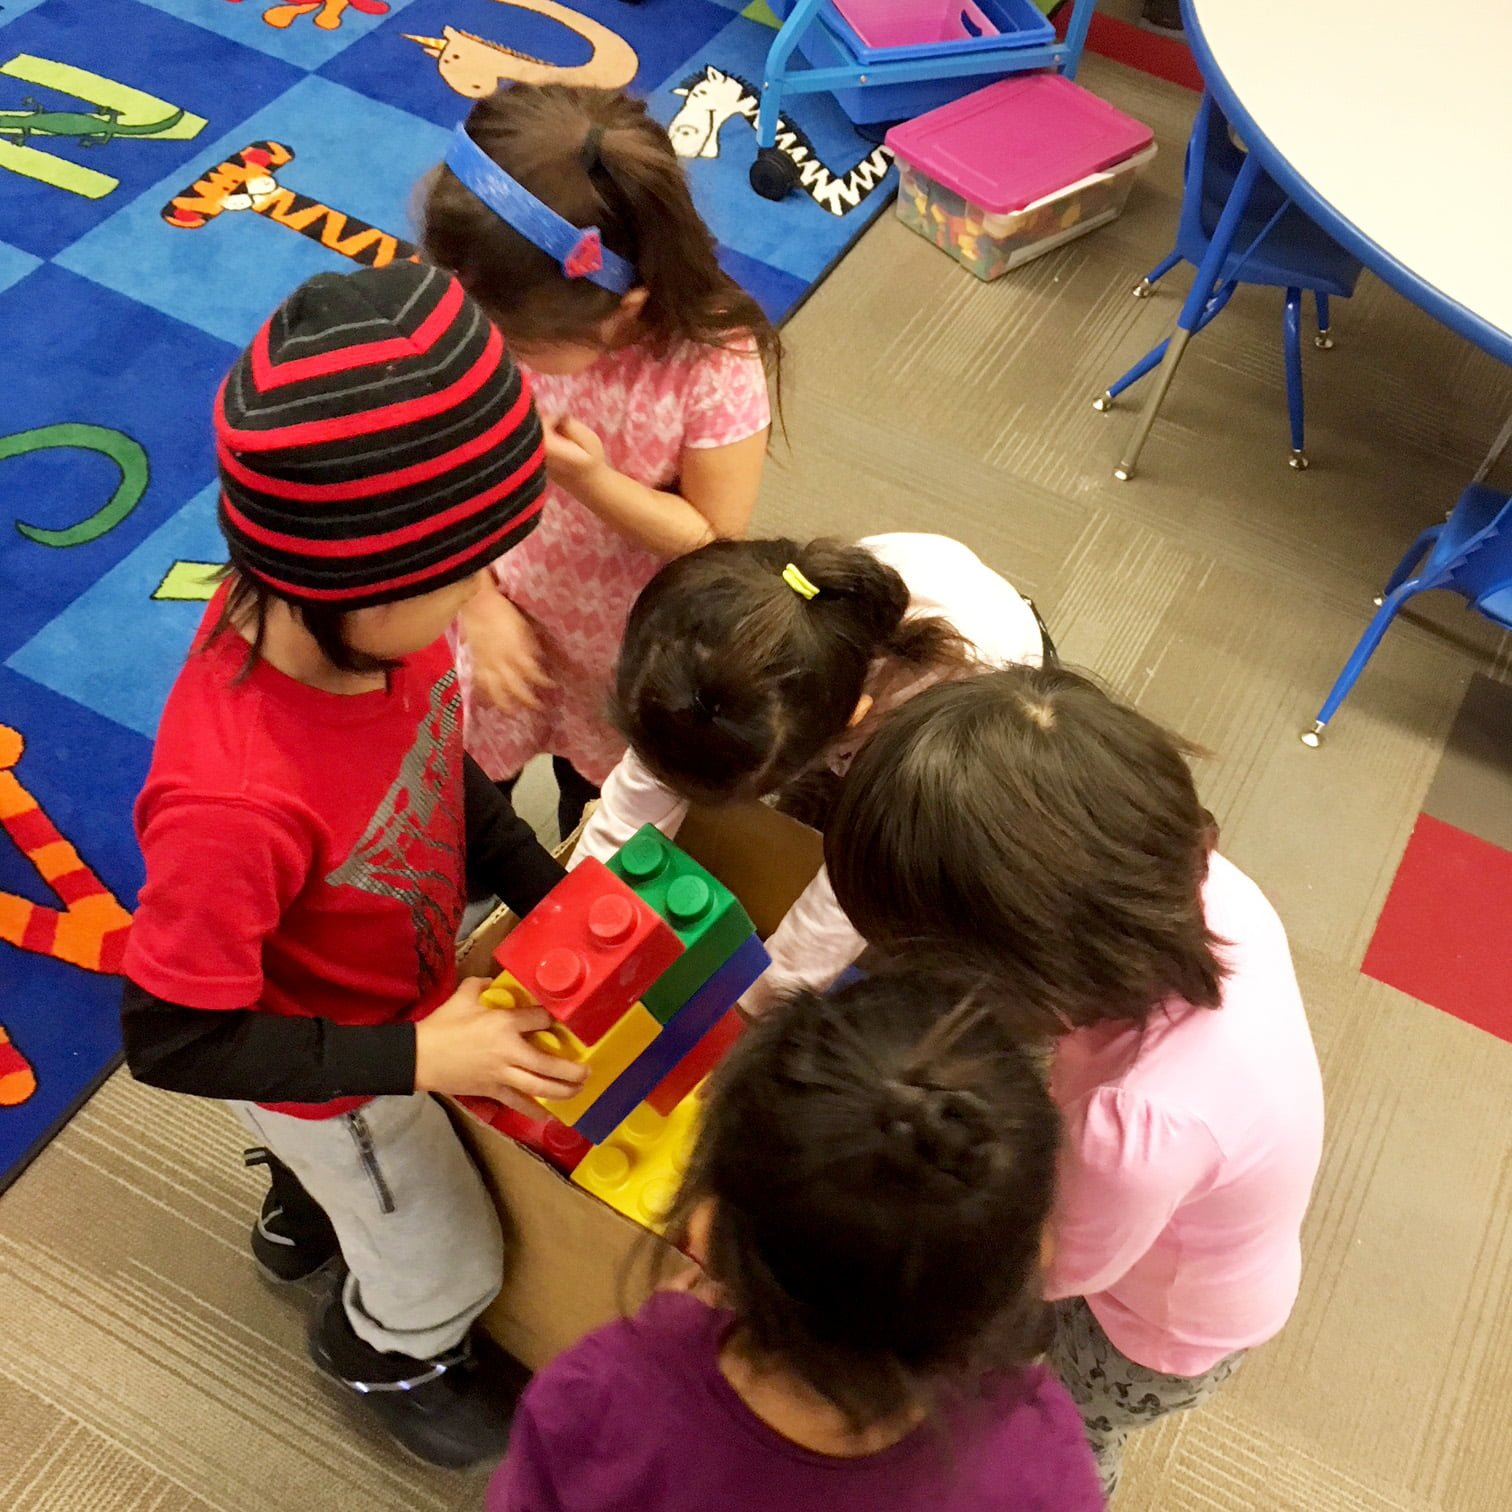 Kids learn through play in Kurtis's class